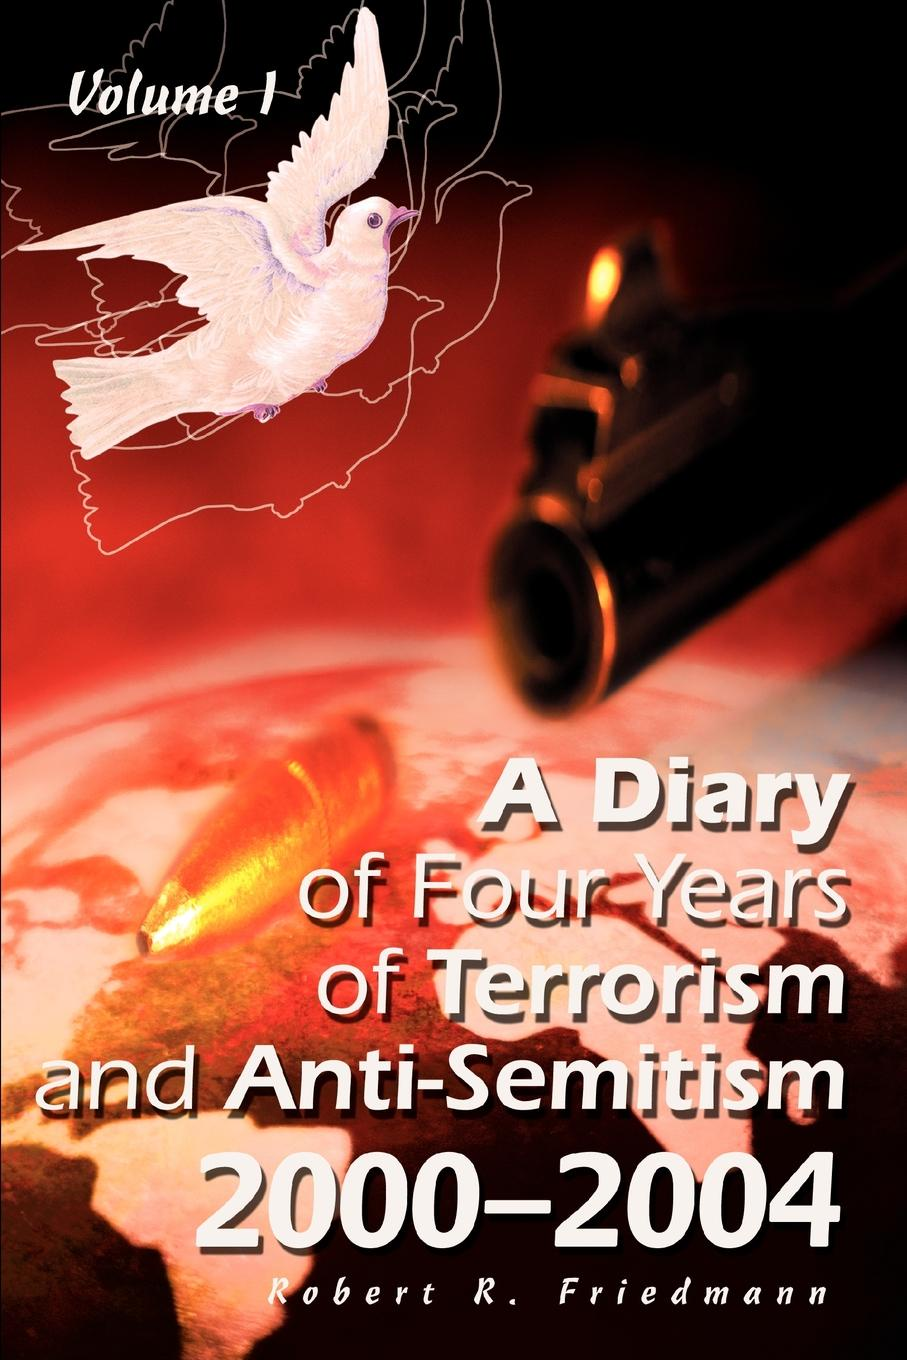 A Diary of Four Years of Terrorism and Anti-Semitism. 2000-2004 Volume 1